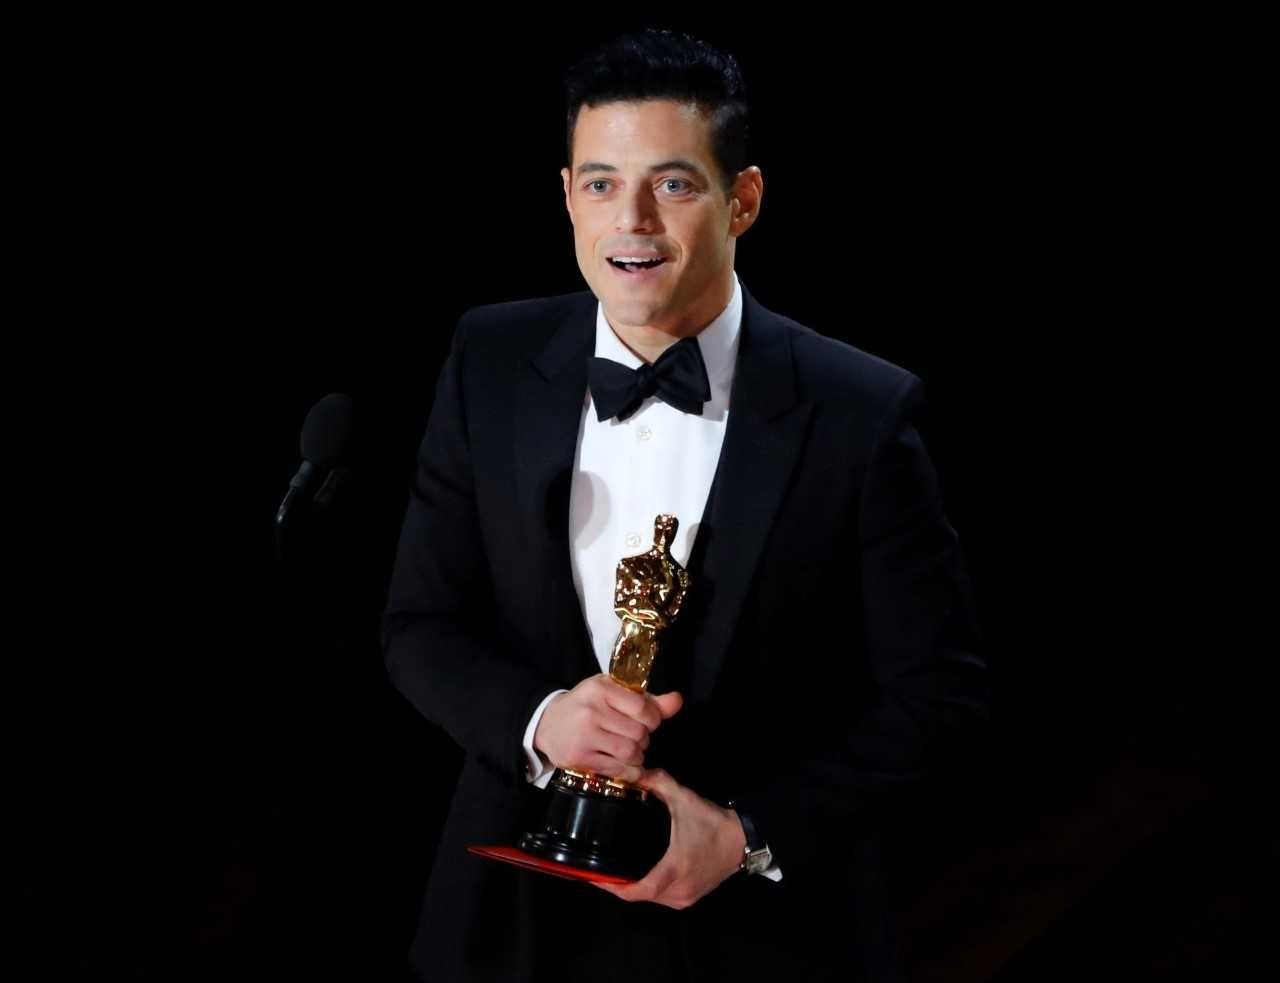 Oscar Award 2019 Gallery